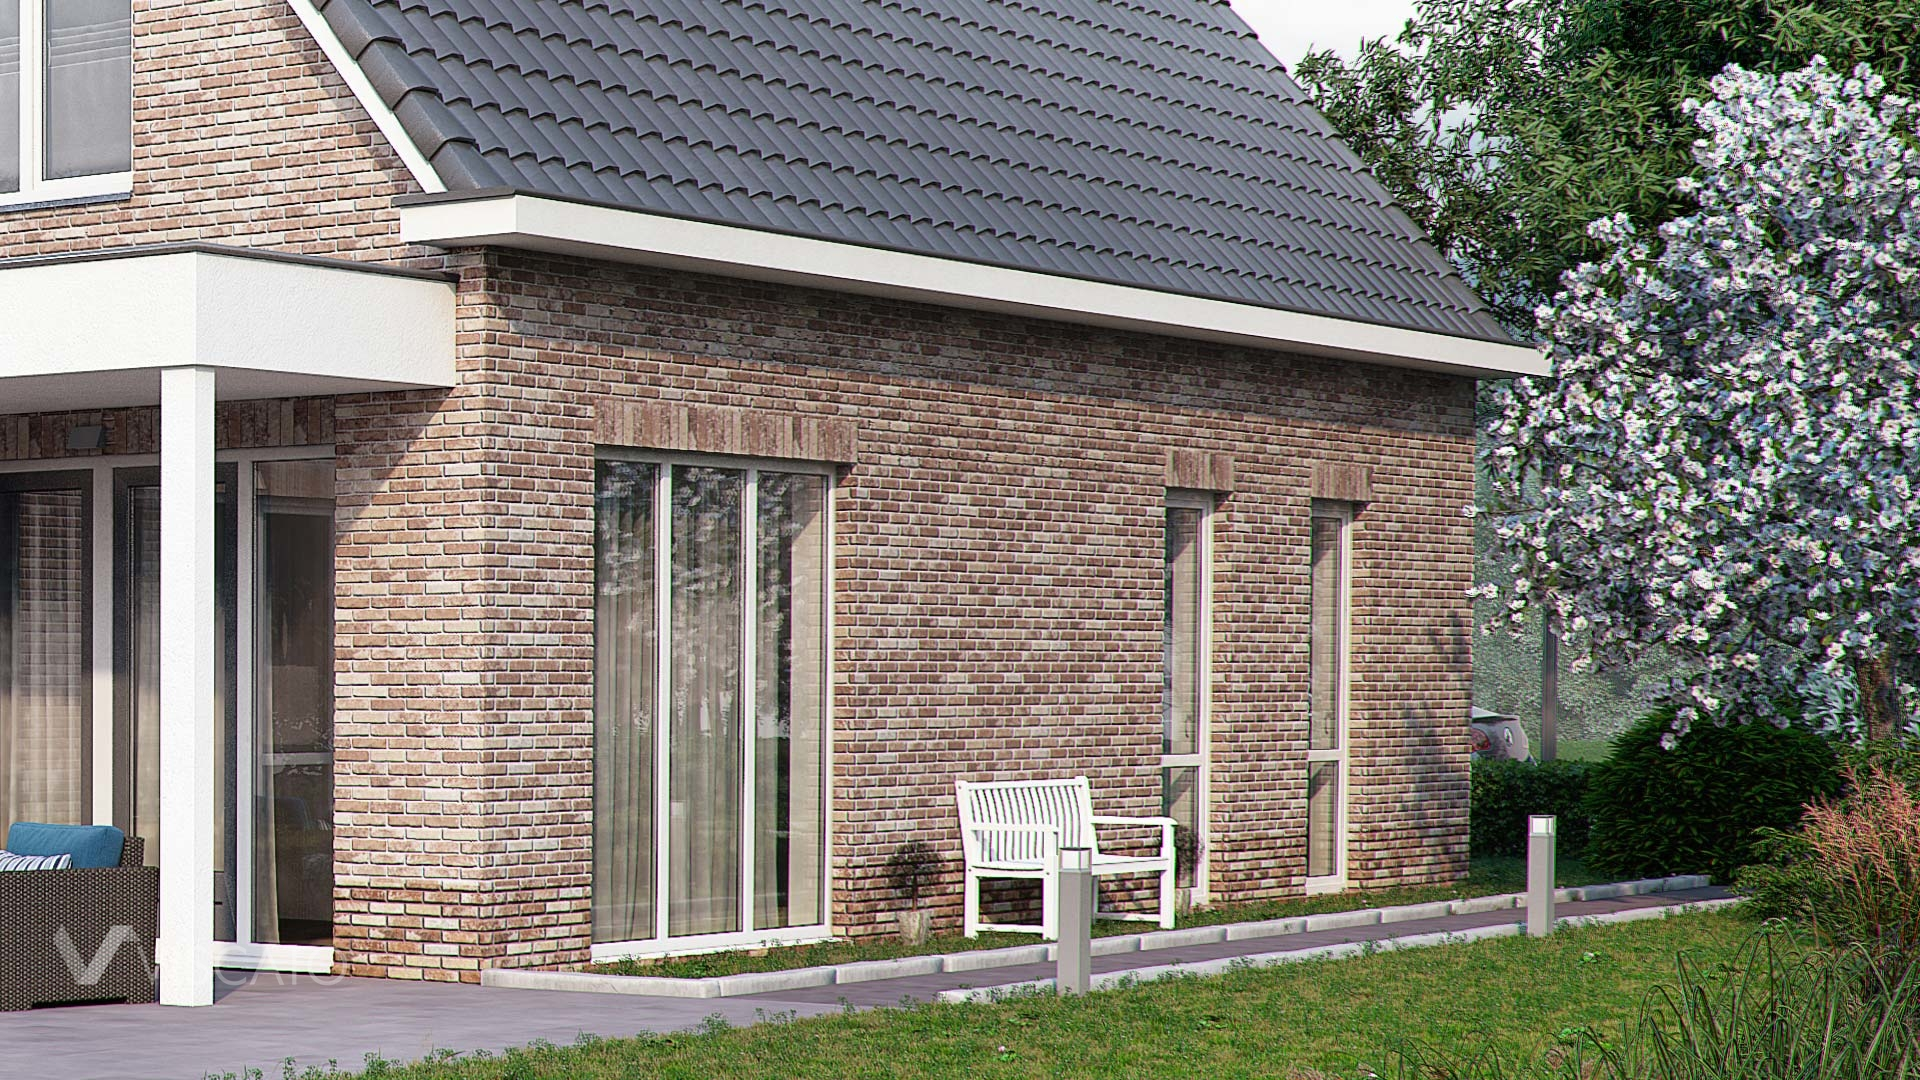 3d Visualization of Brick house with garden - part of a garden